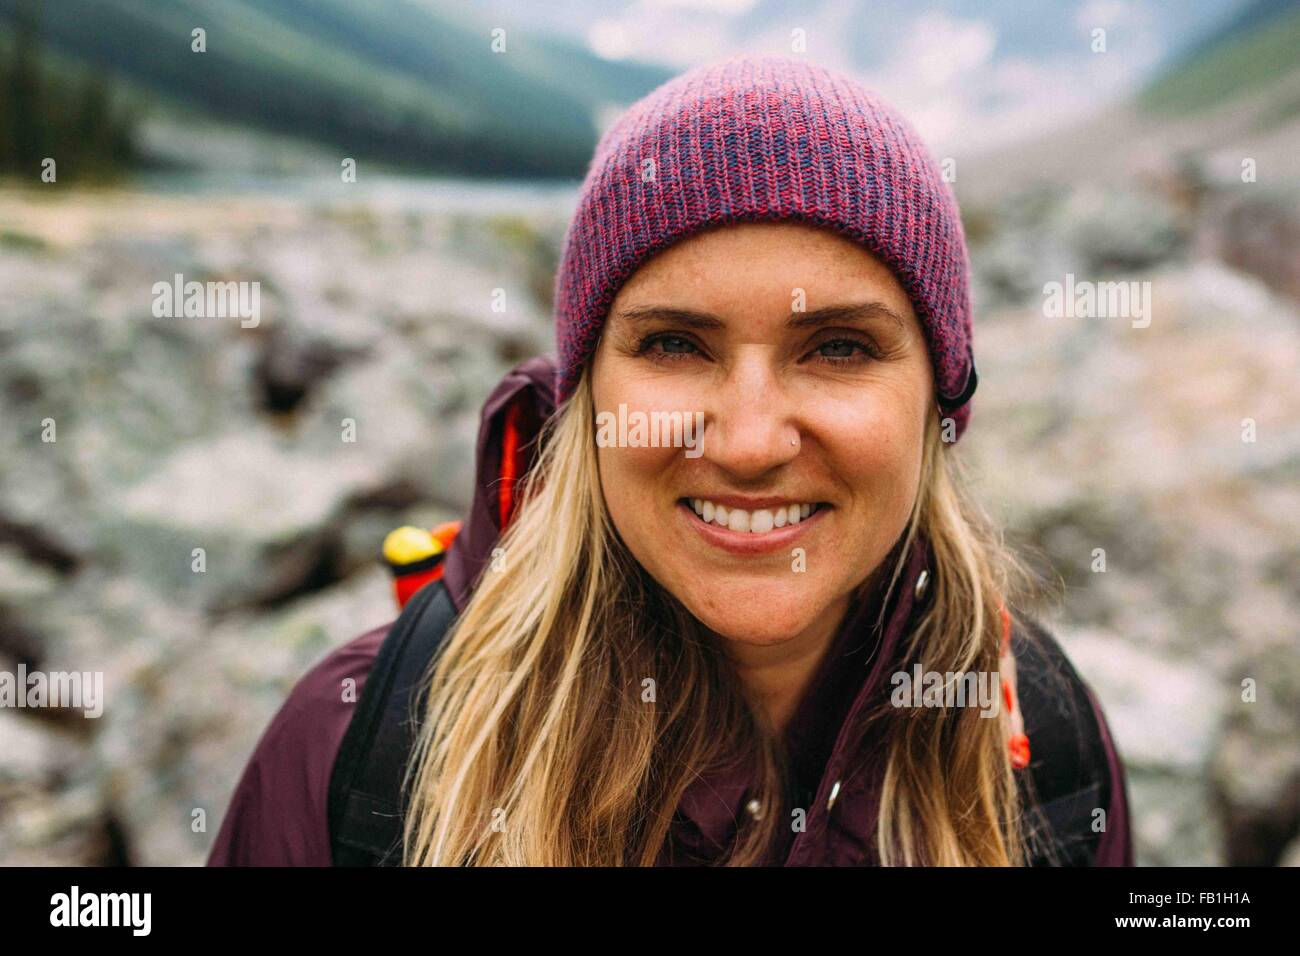 Portrait of mid adult woman wearing knit hat looking at camera smiling, Moraine lake, Banff National Park, Alberta - Stock Image